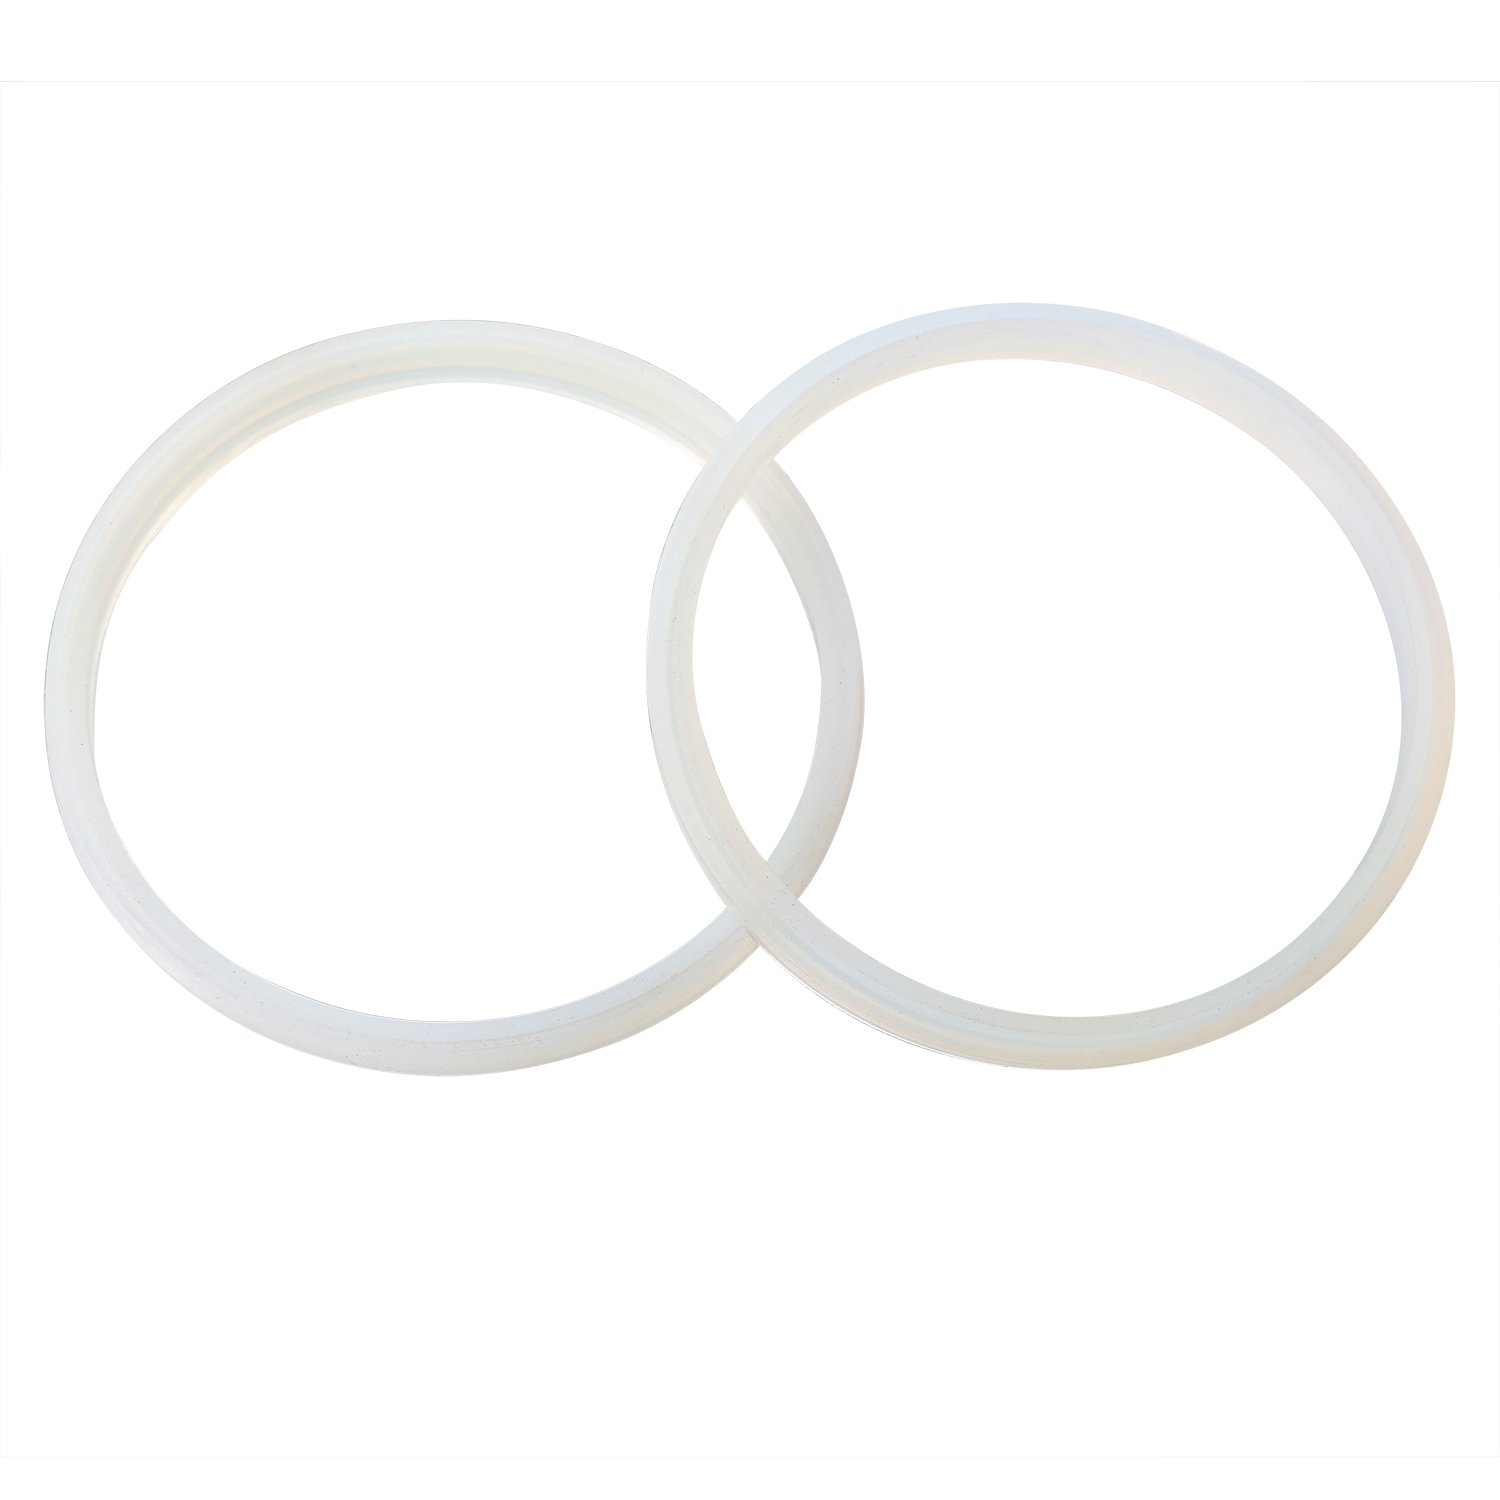 Hakka Sausage Stuffer Spare Plunger Gasket for Vertical and Horzontal 3-5-7 Liters Sausage Maker(Pack of 2)